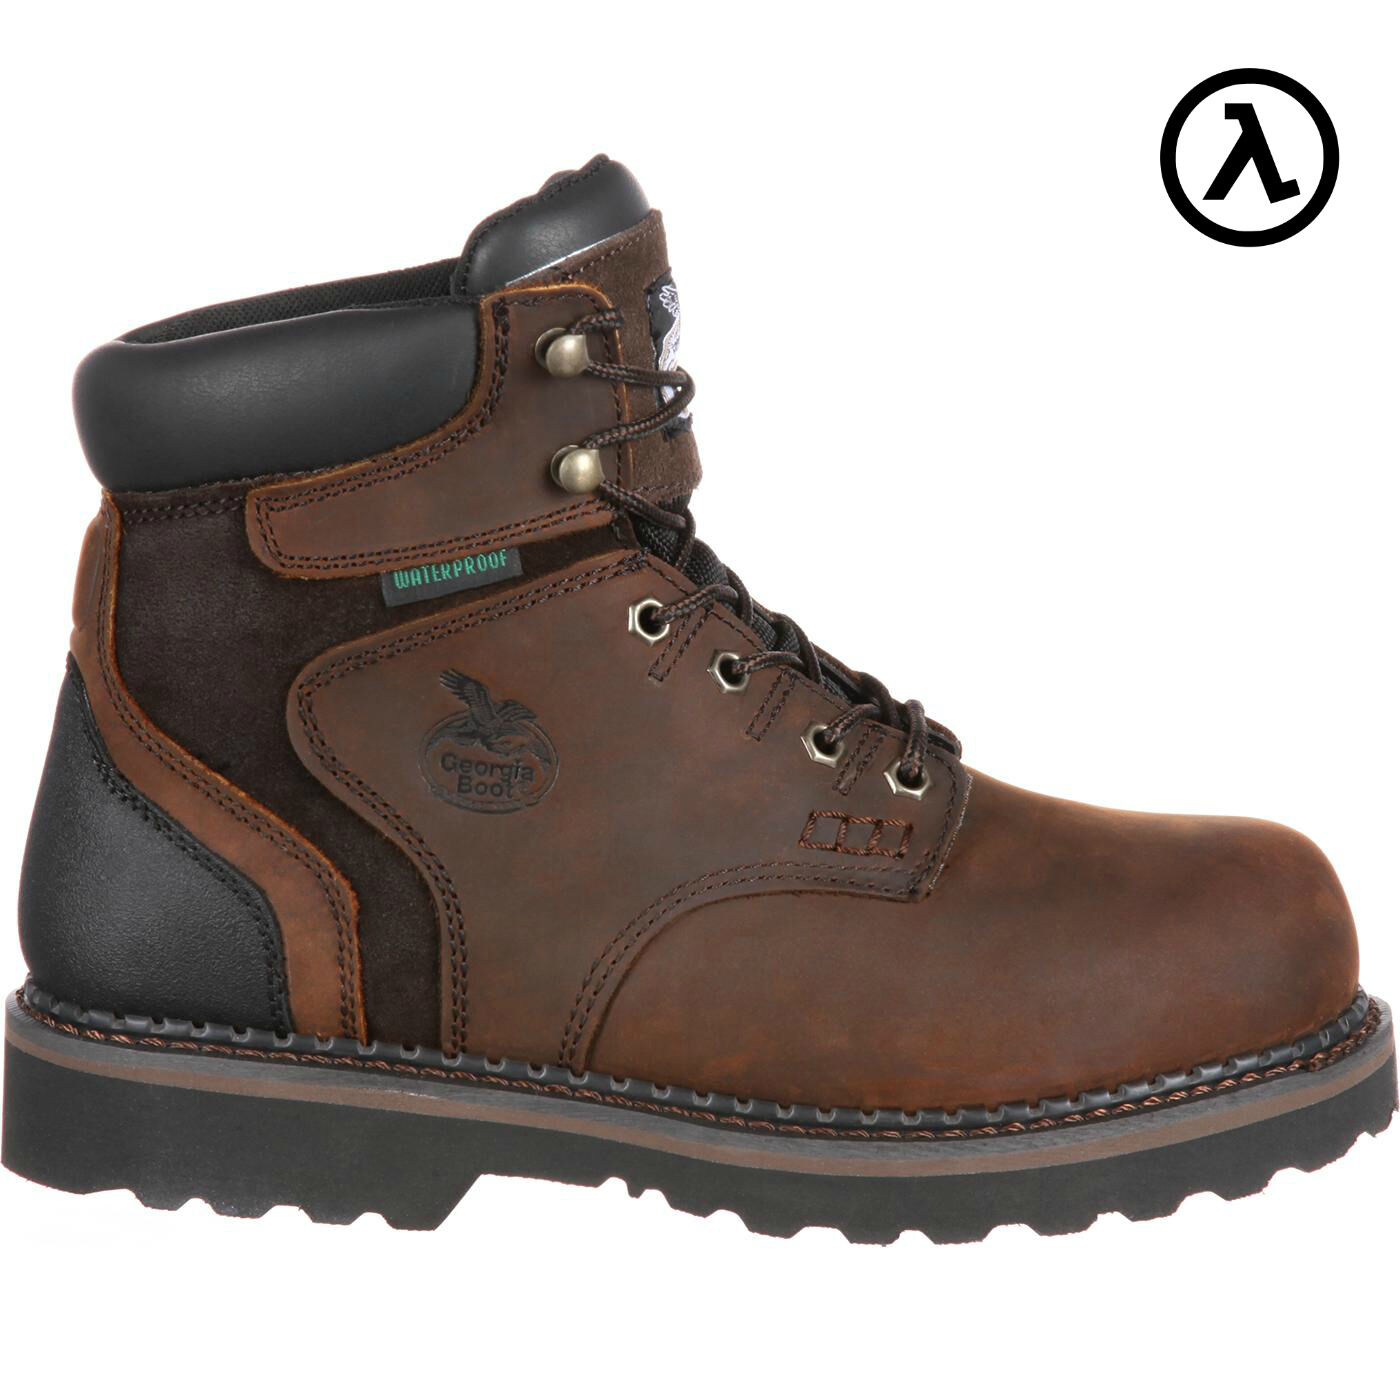 GEORGIA BROOKVILLE * WATERPROOF STEEL TOE WORK BOOTS G7334 * BROOKVILLE ALL SIZES - NEW c1e0f8